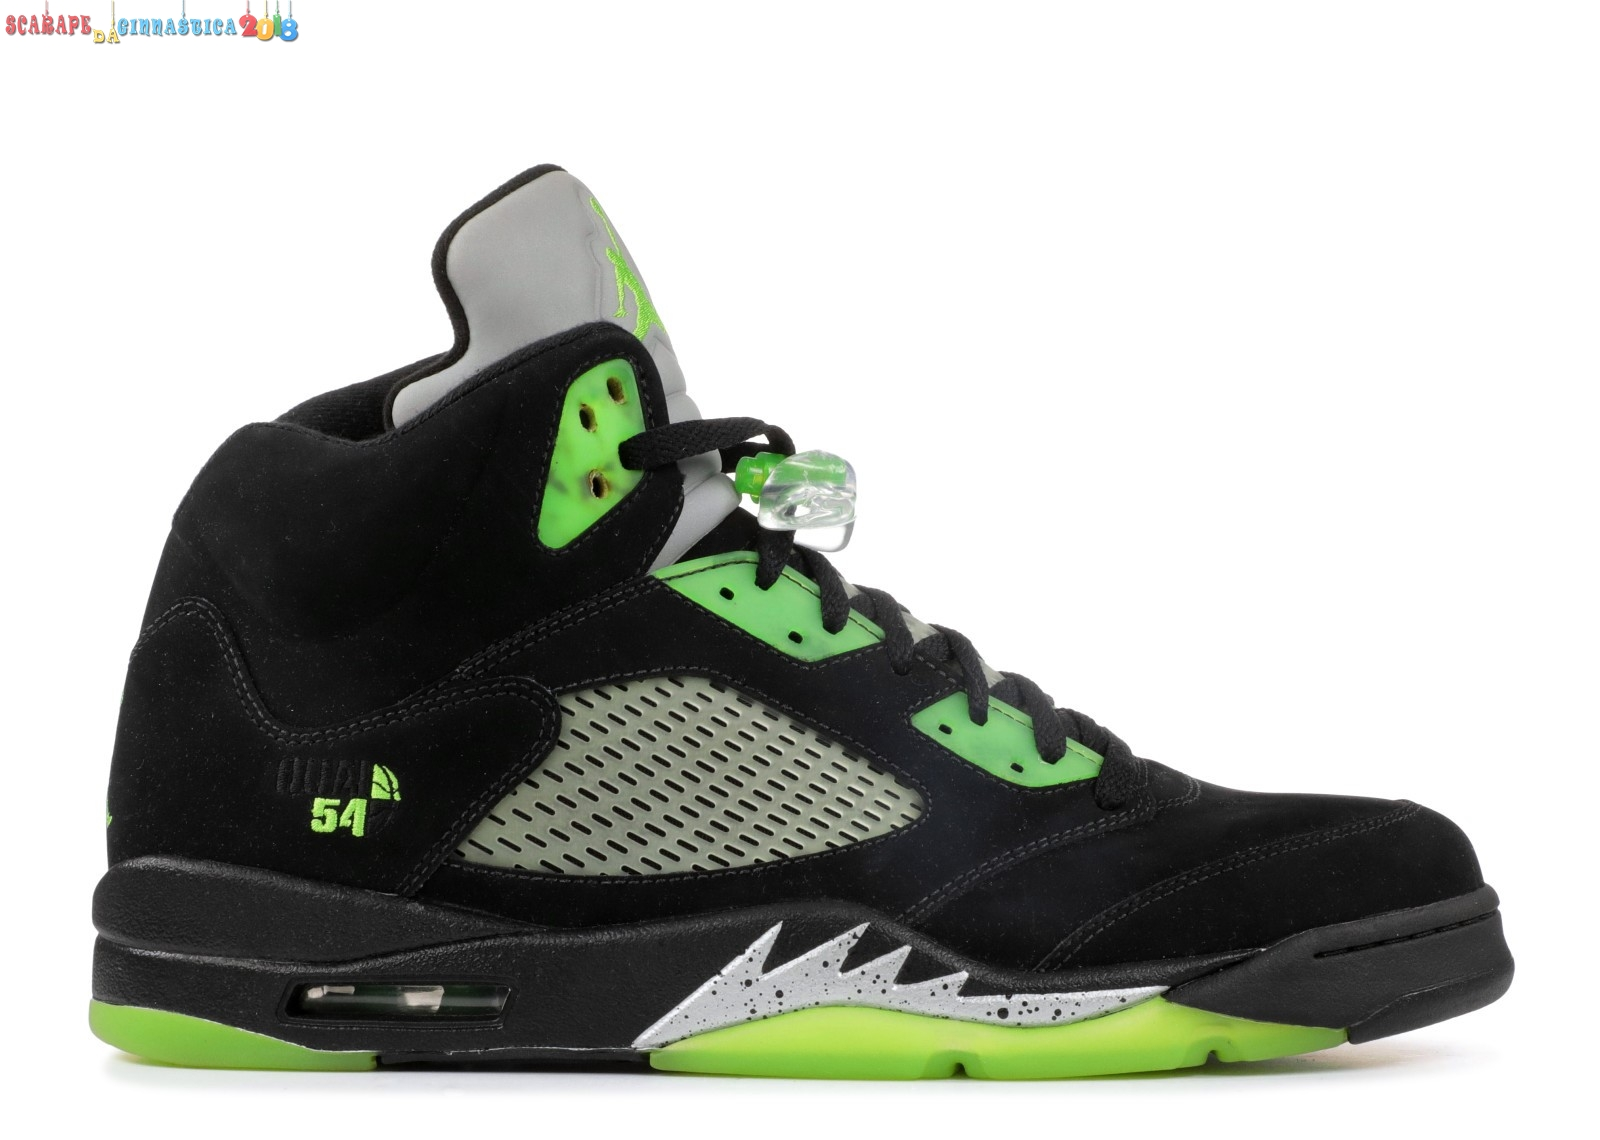 "Nuovi Prodotti Air Jordan 5 Retro Q54 ""Quai 54 Friends And Family"" Nero Verde (fa11mnjdls511) - Uomo - Scarpe da basket"